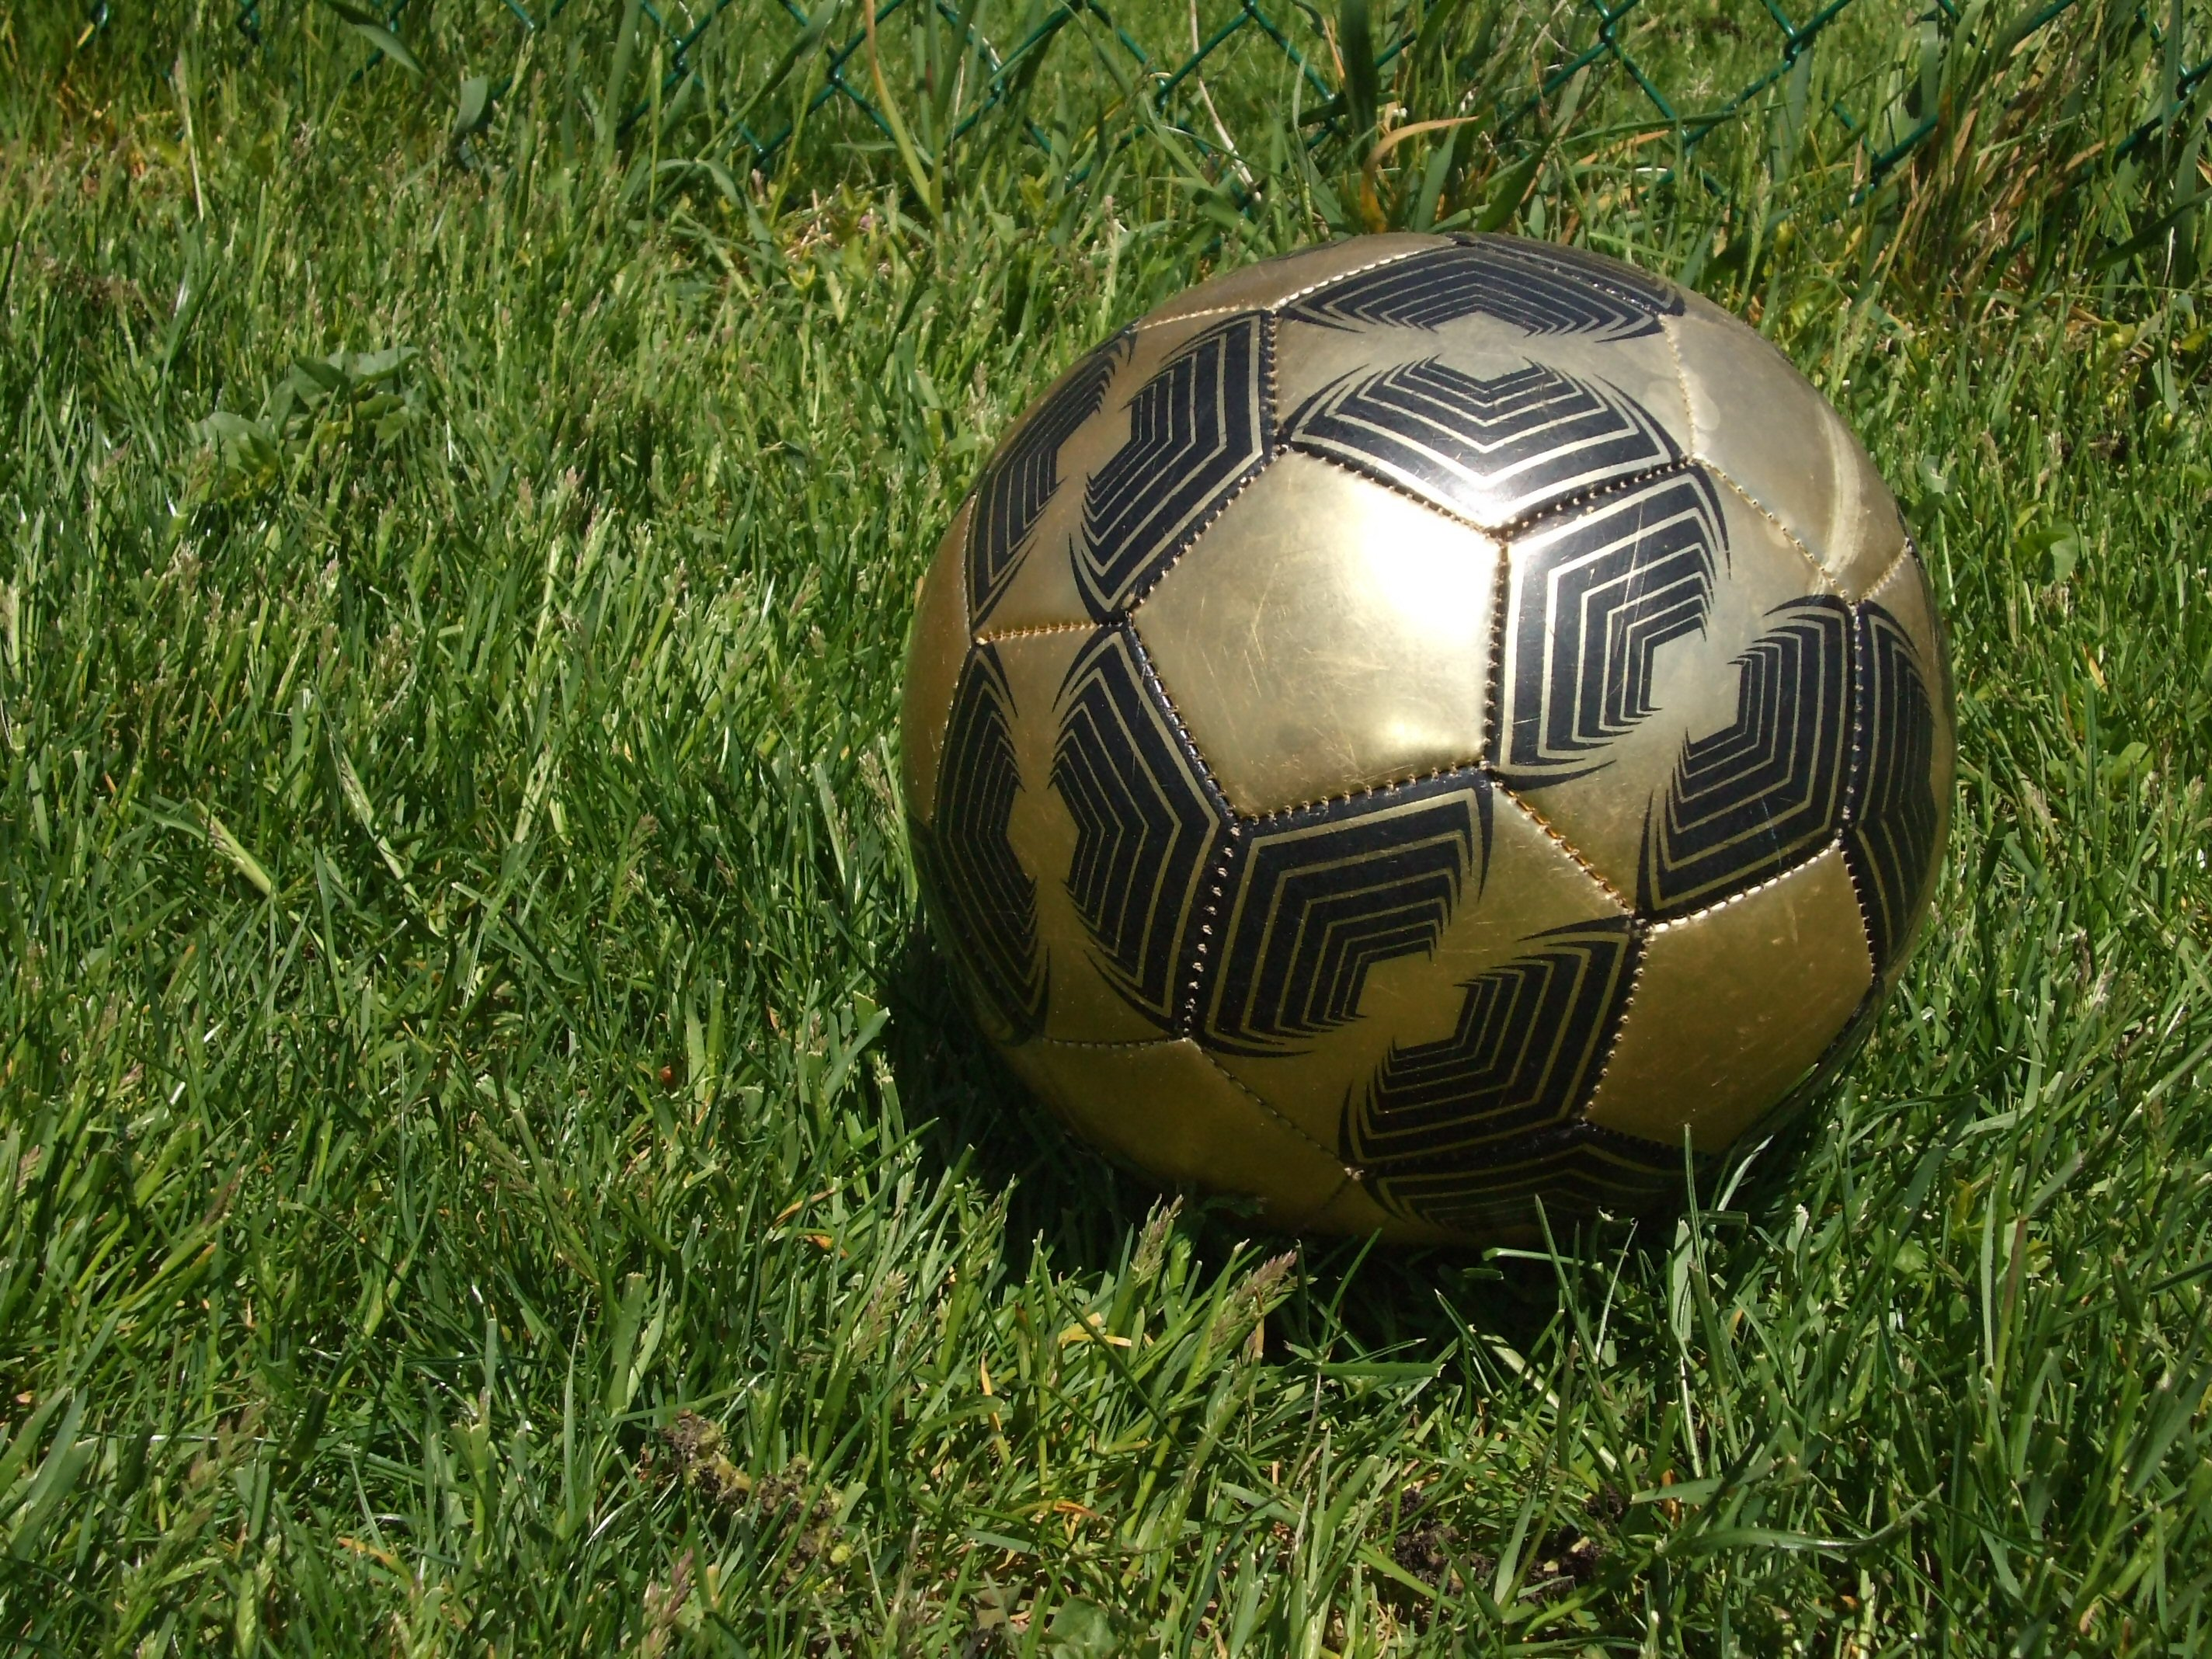 Soccer Ball, Ball, Black, Competition, Football, HQ Photo